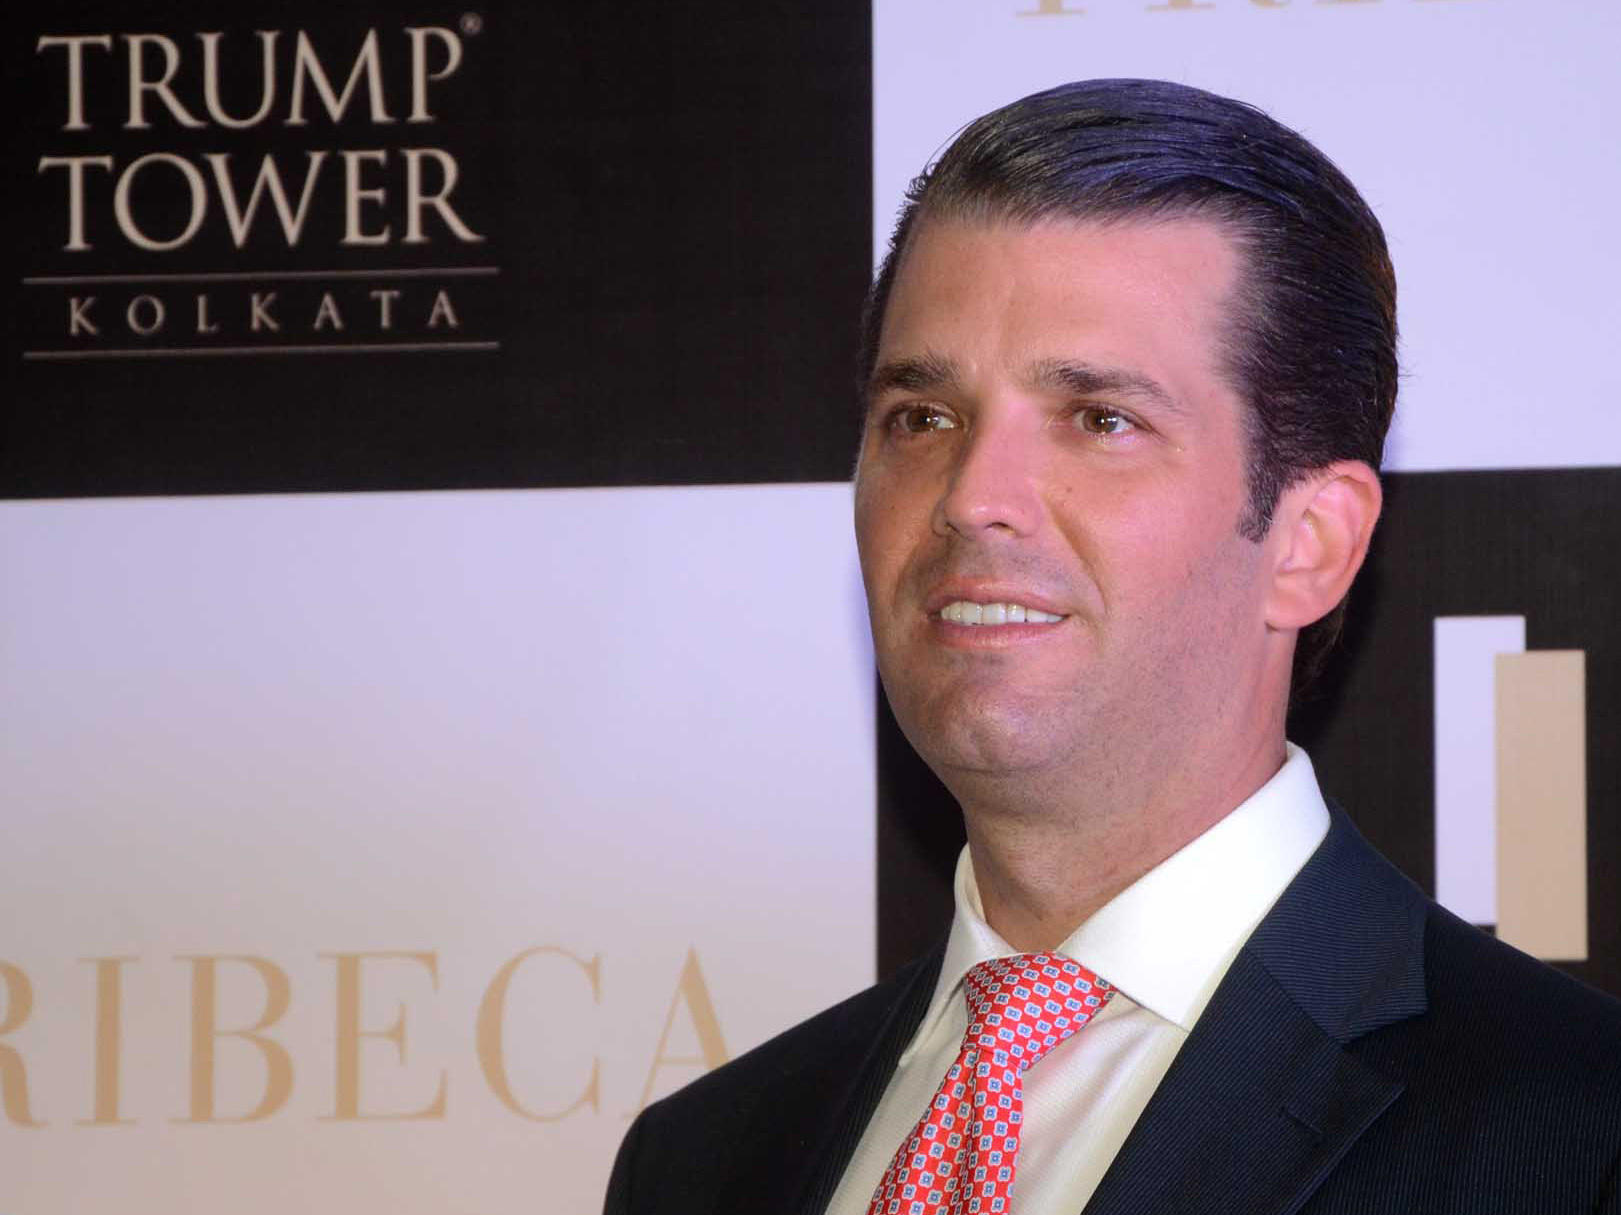 Donald Trump Jr praises the smiles of India's poor